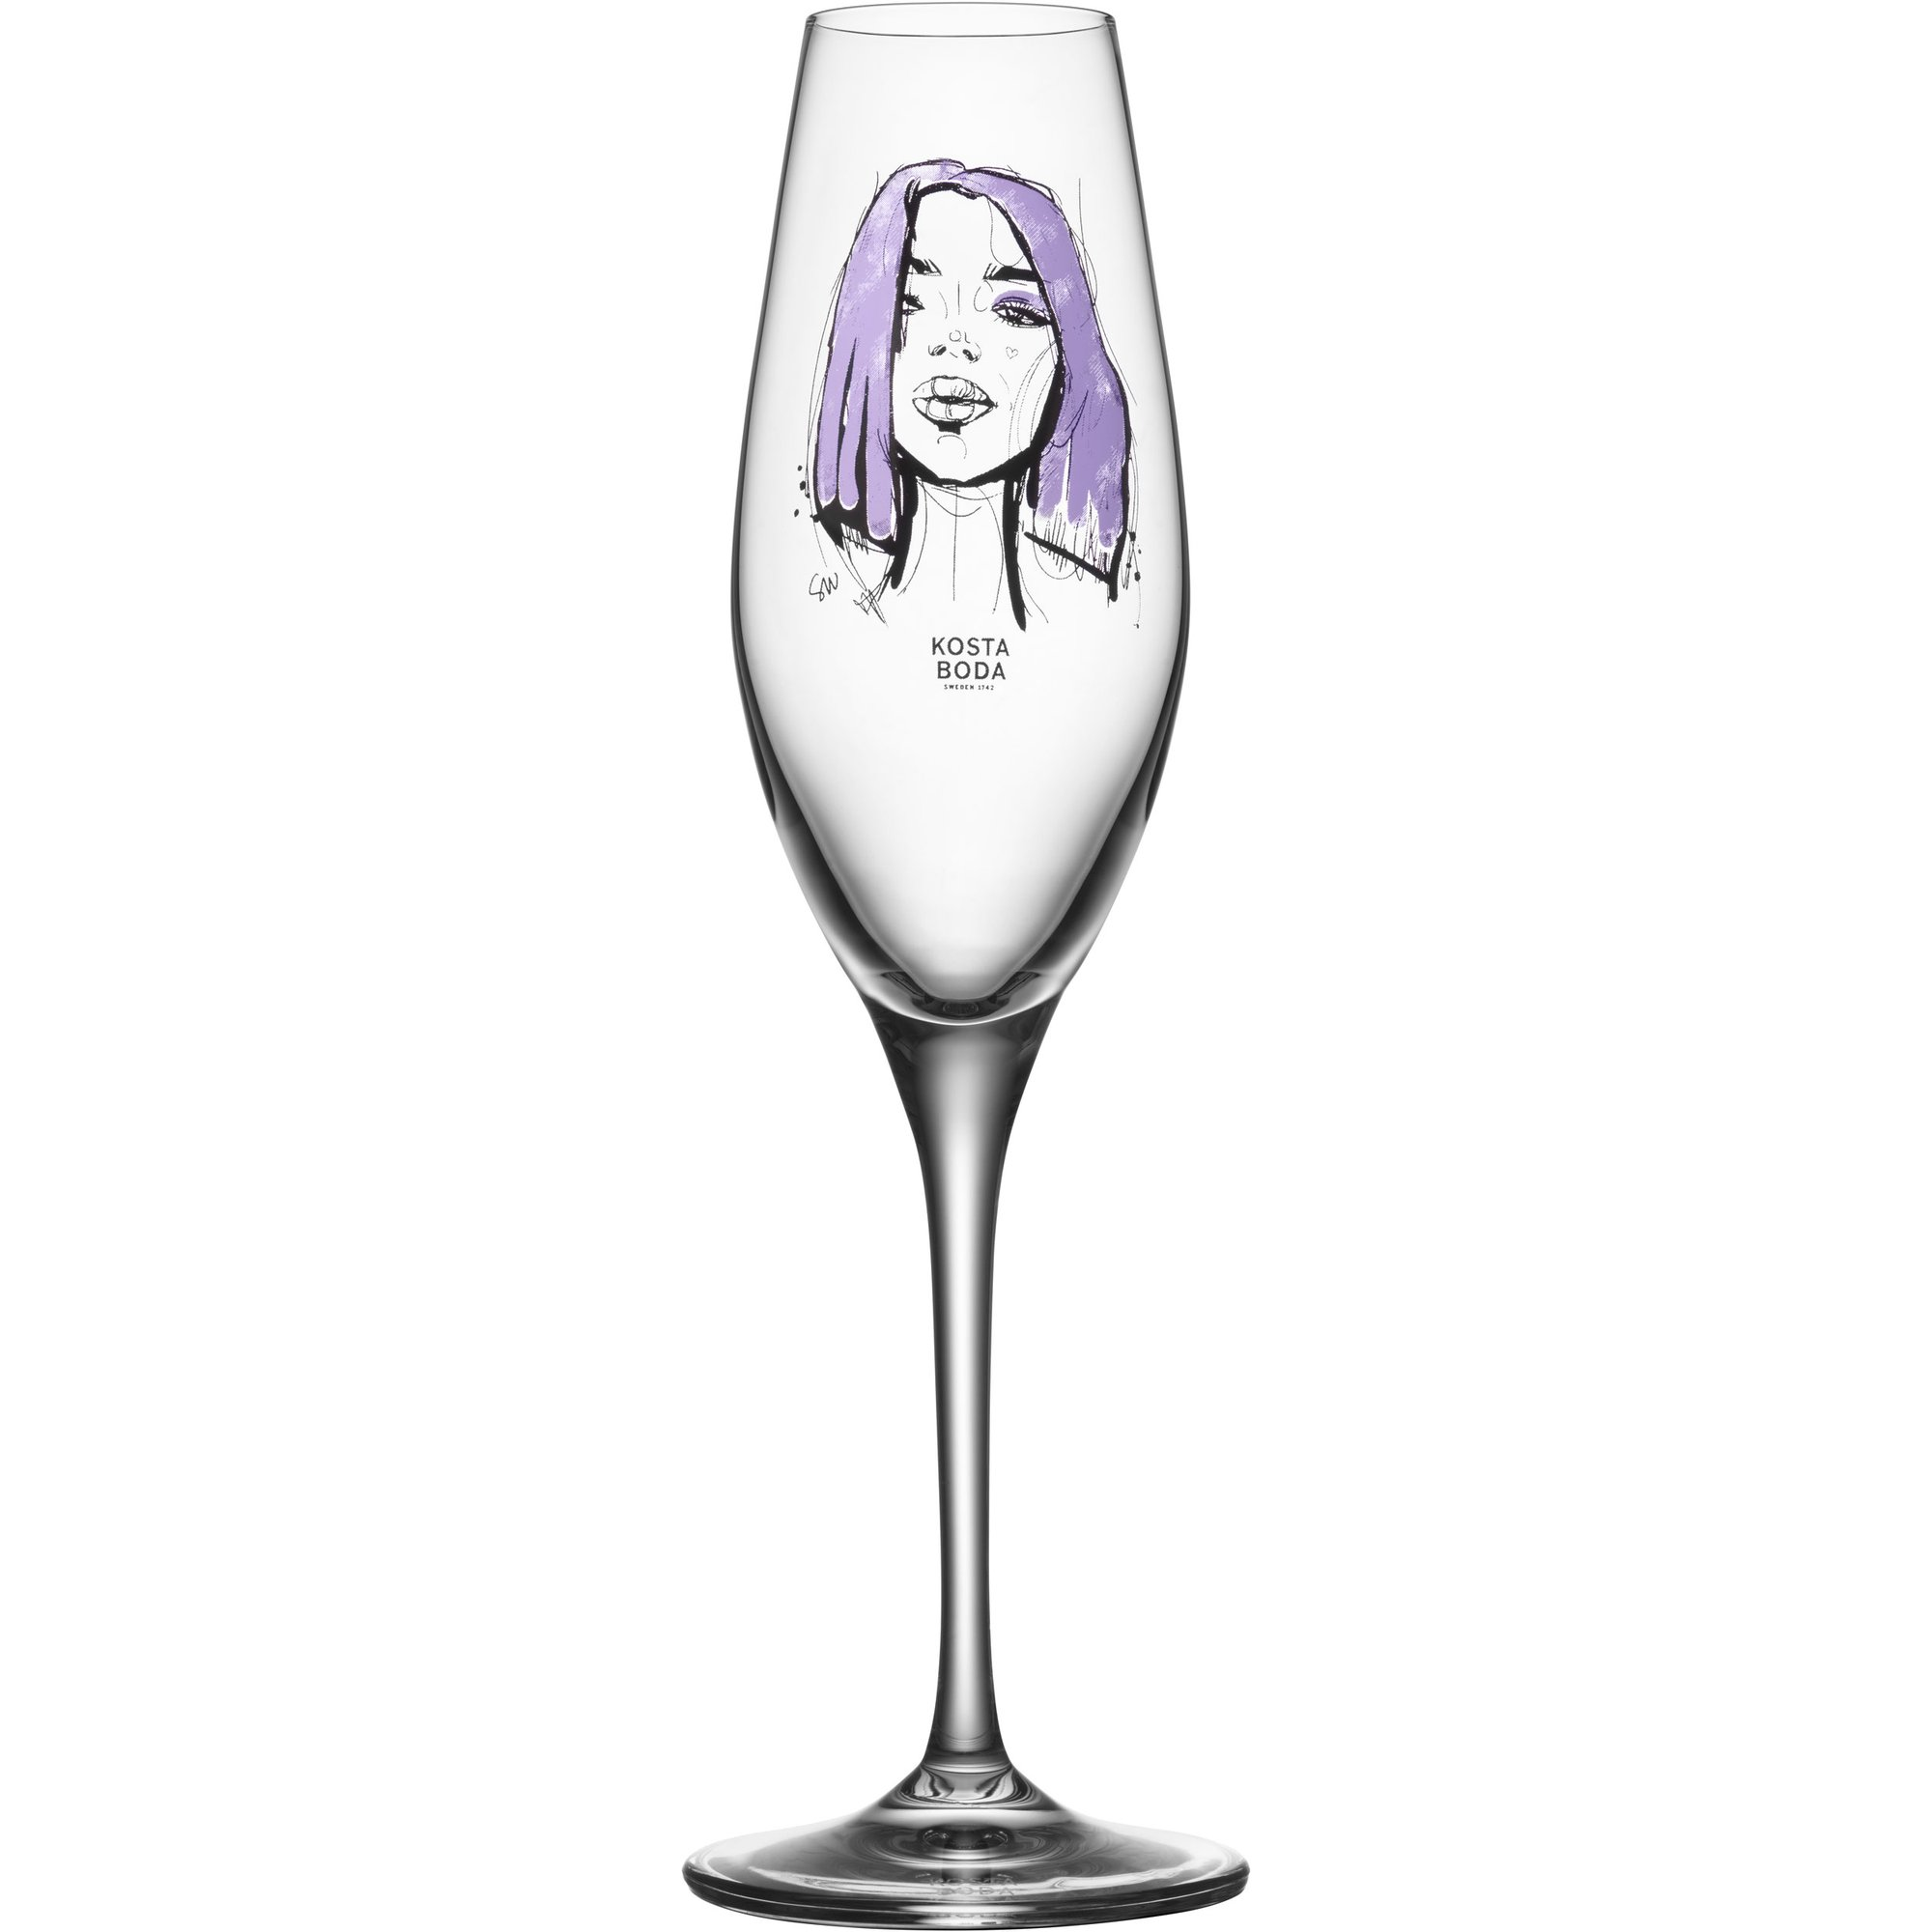 Kosta Boda All About You Forever Mine Champagneglas 2 st.